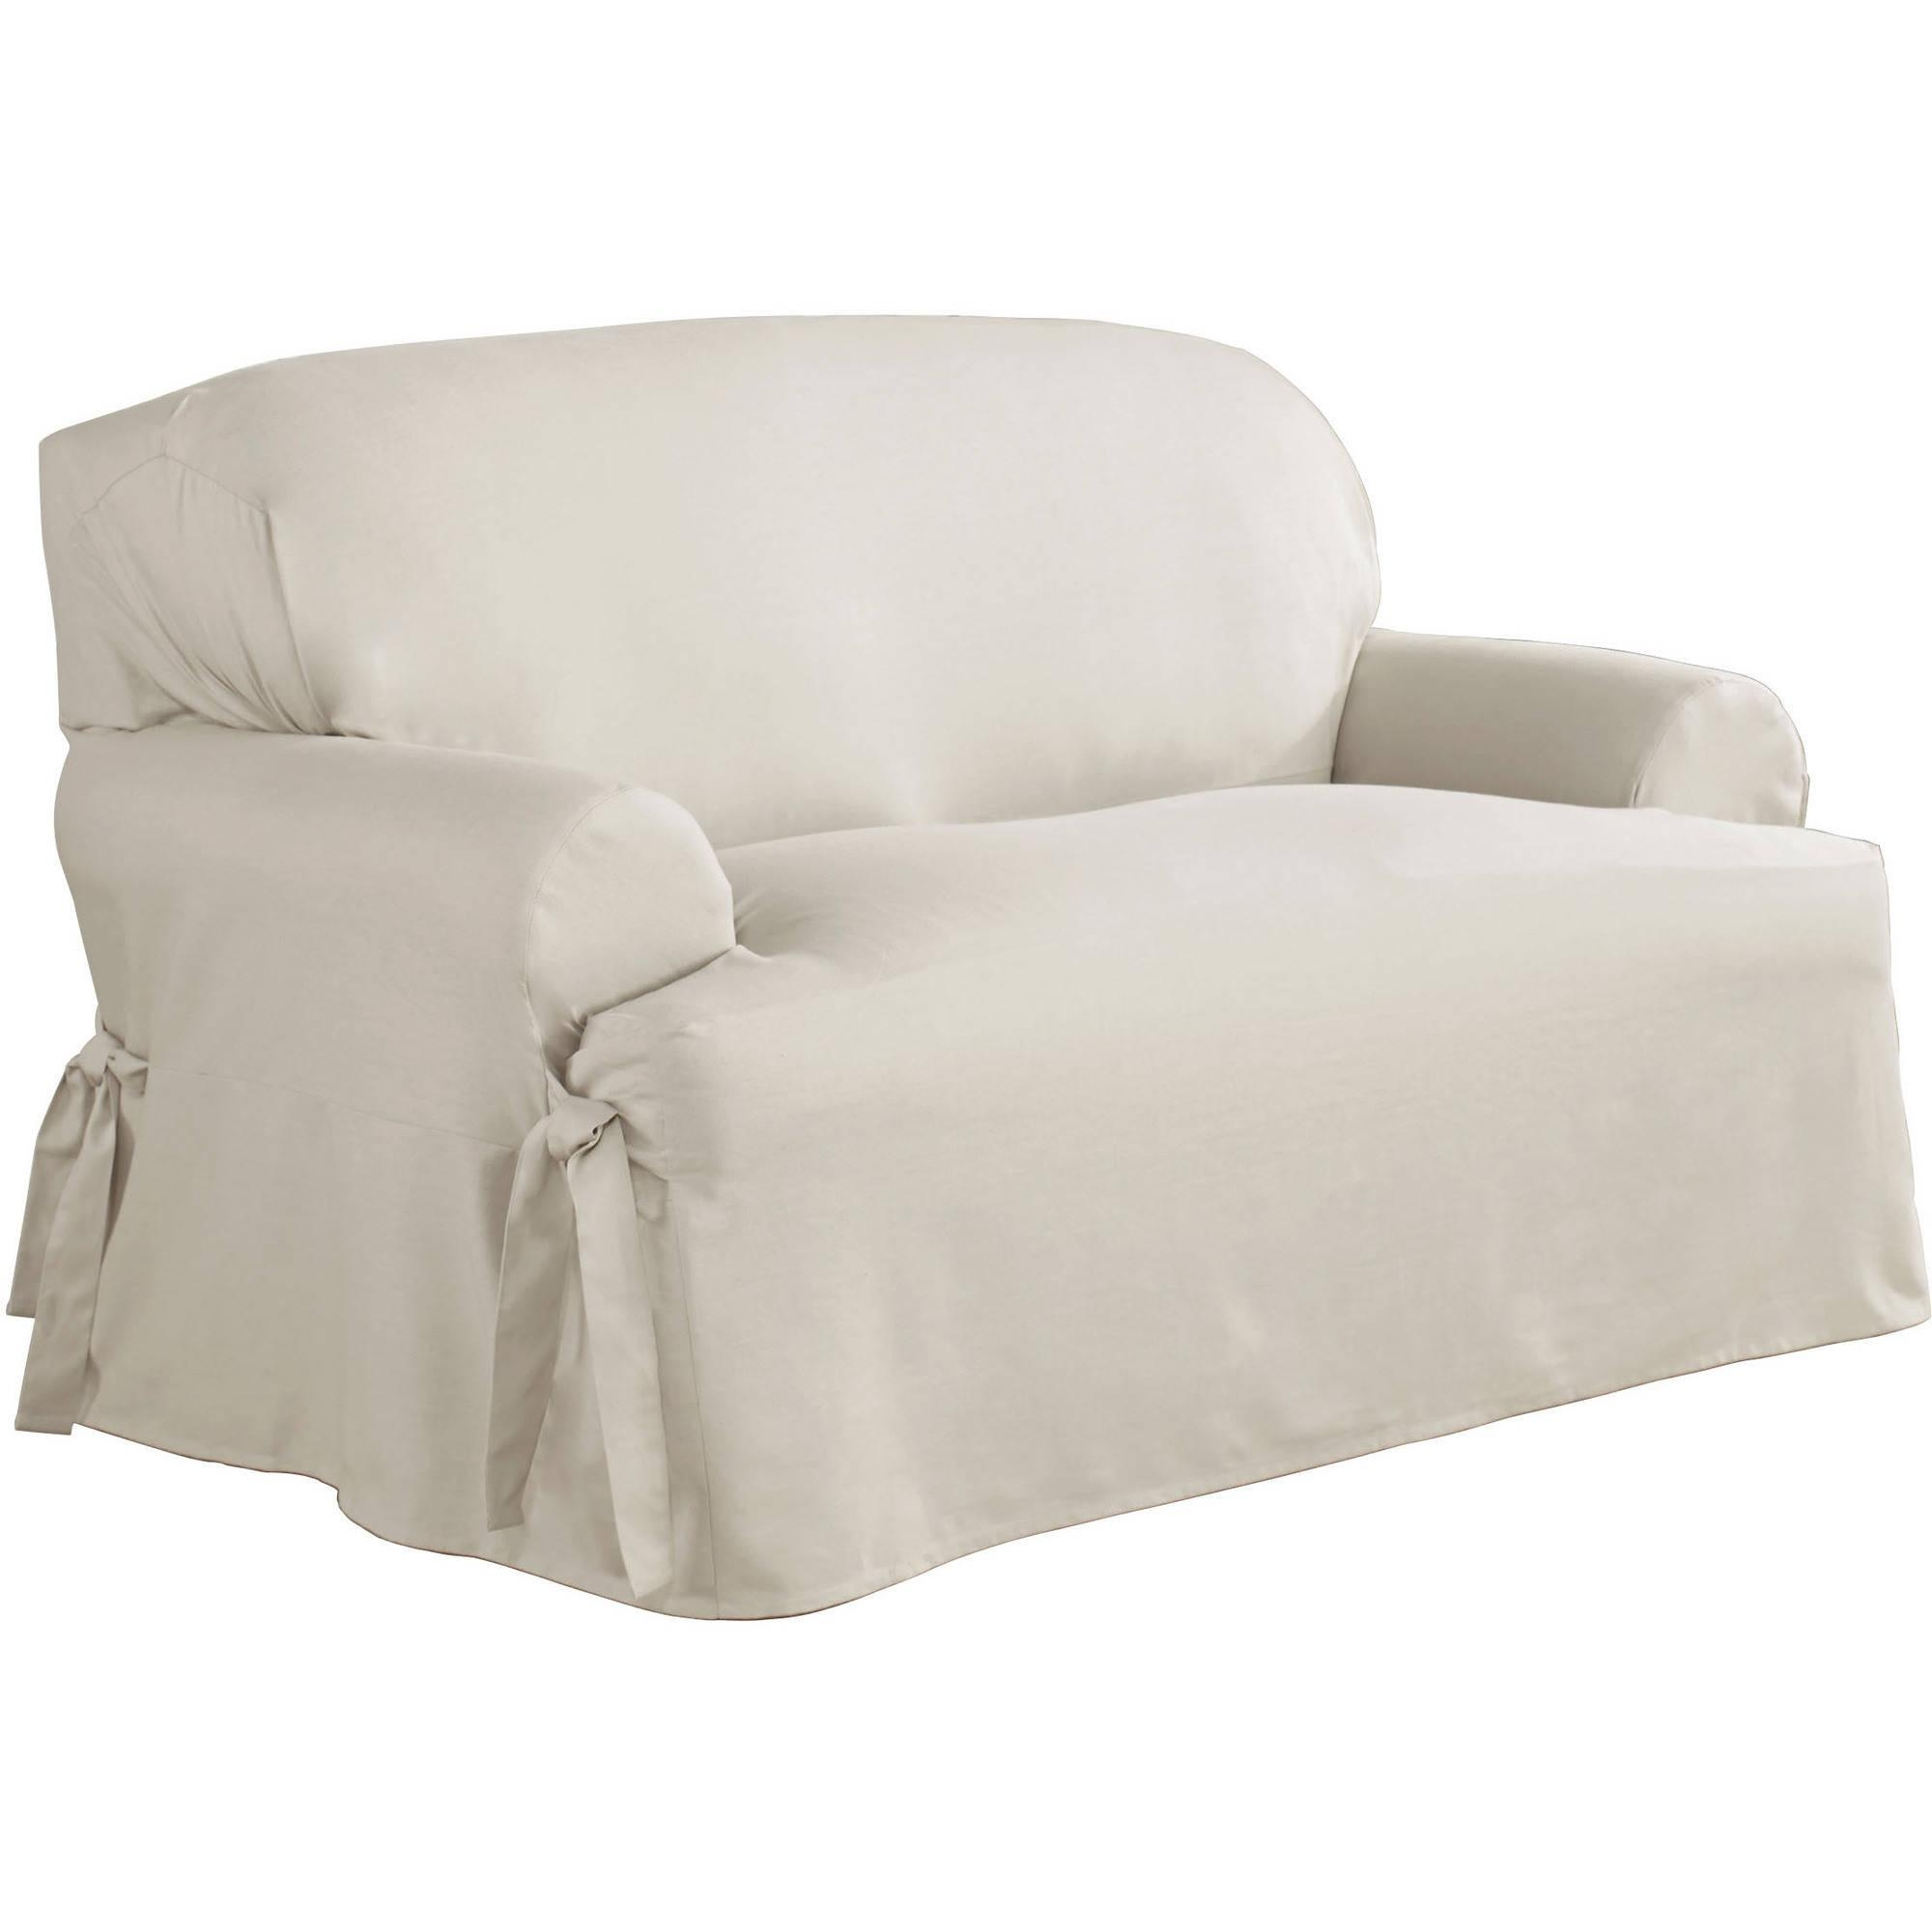 Serta Relaxed Fit Duck Furniture Slipcover, Loveseat 1 Piece T Inside Slip Covers For Love Seats (View 5 of 20)